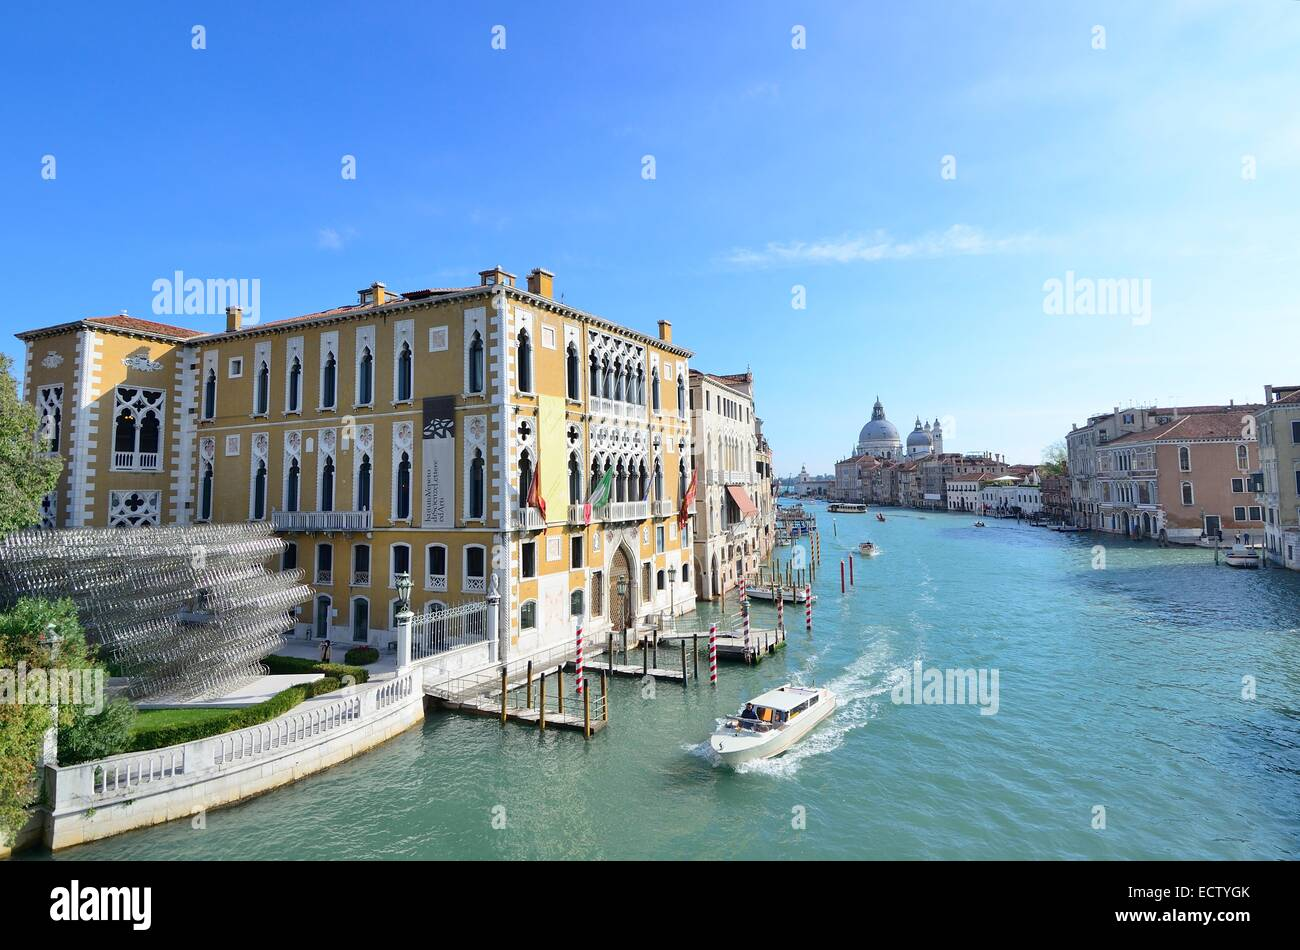 Grand Canal Venice, view from academia bridge - Stock Image